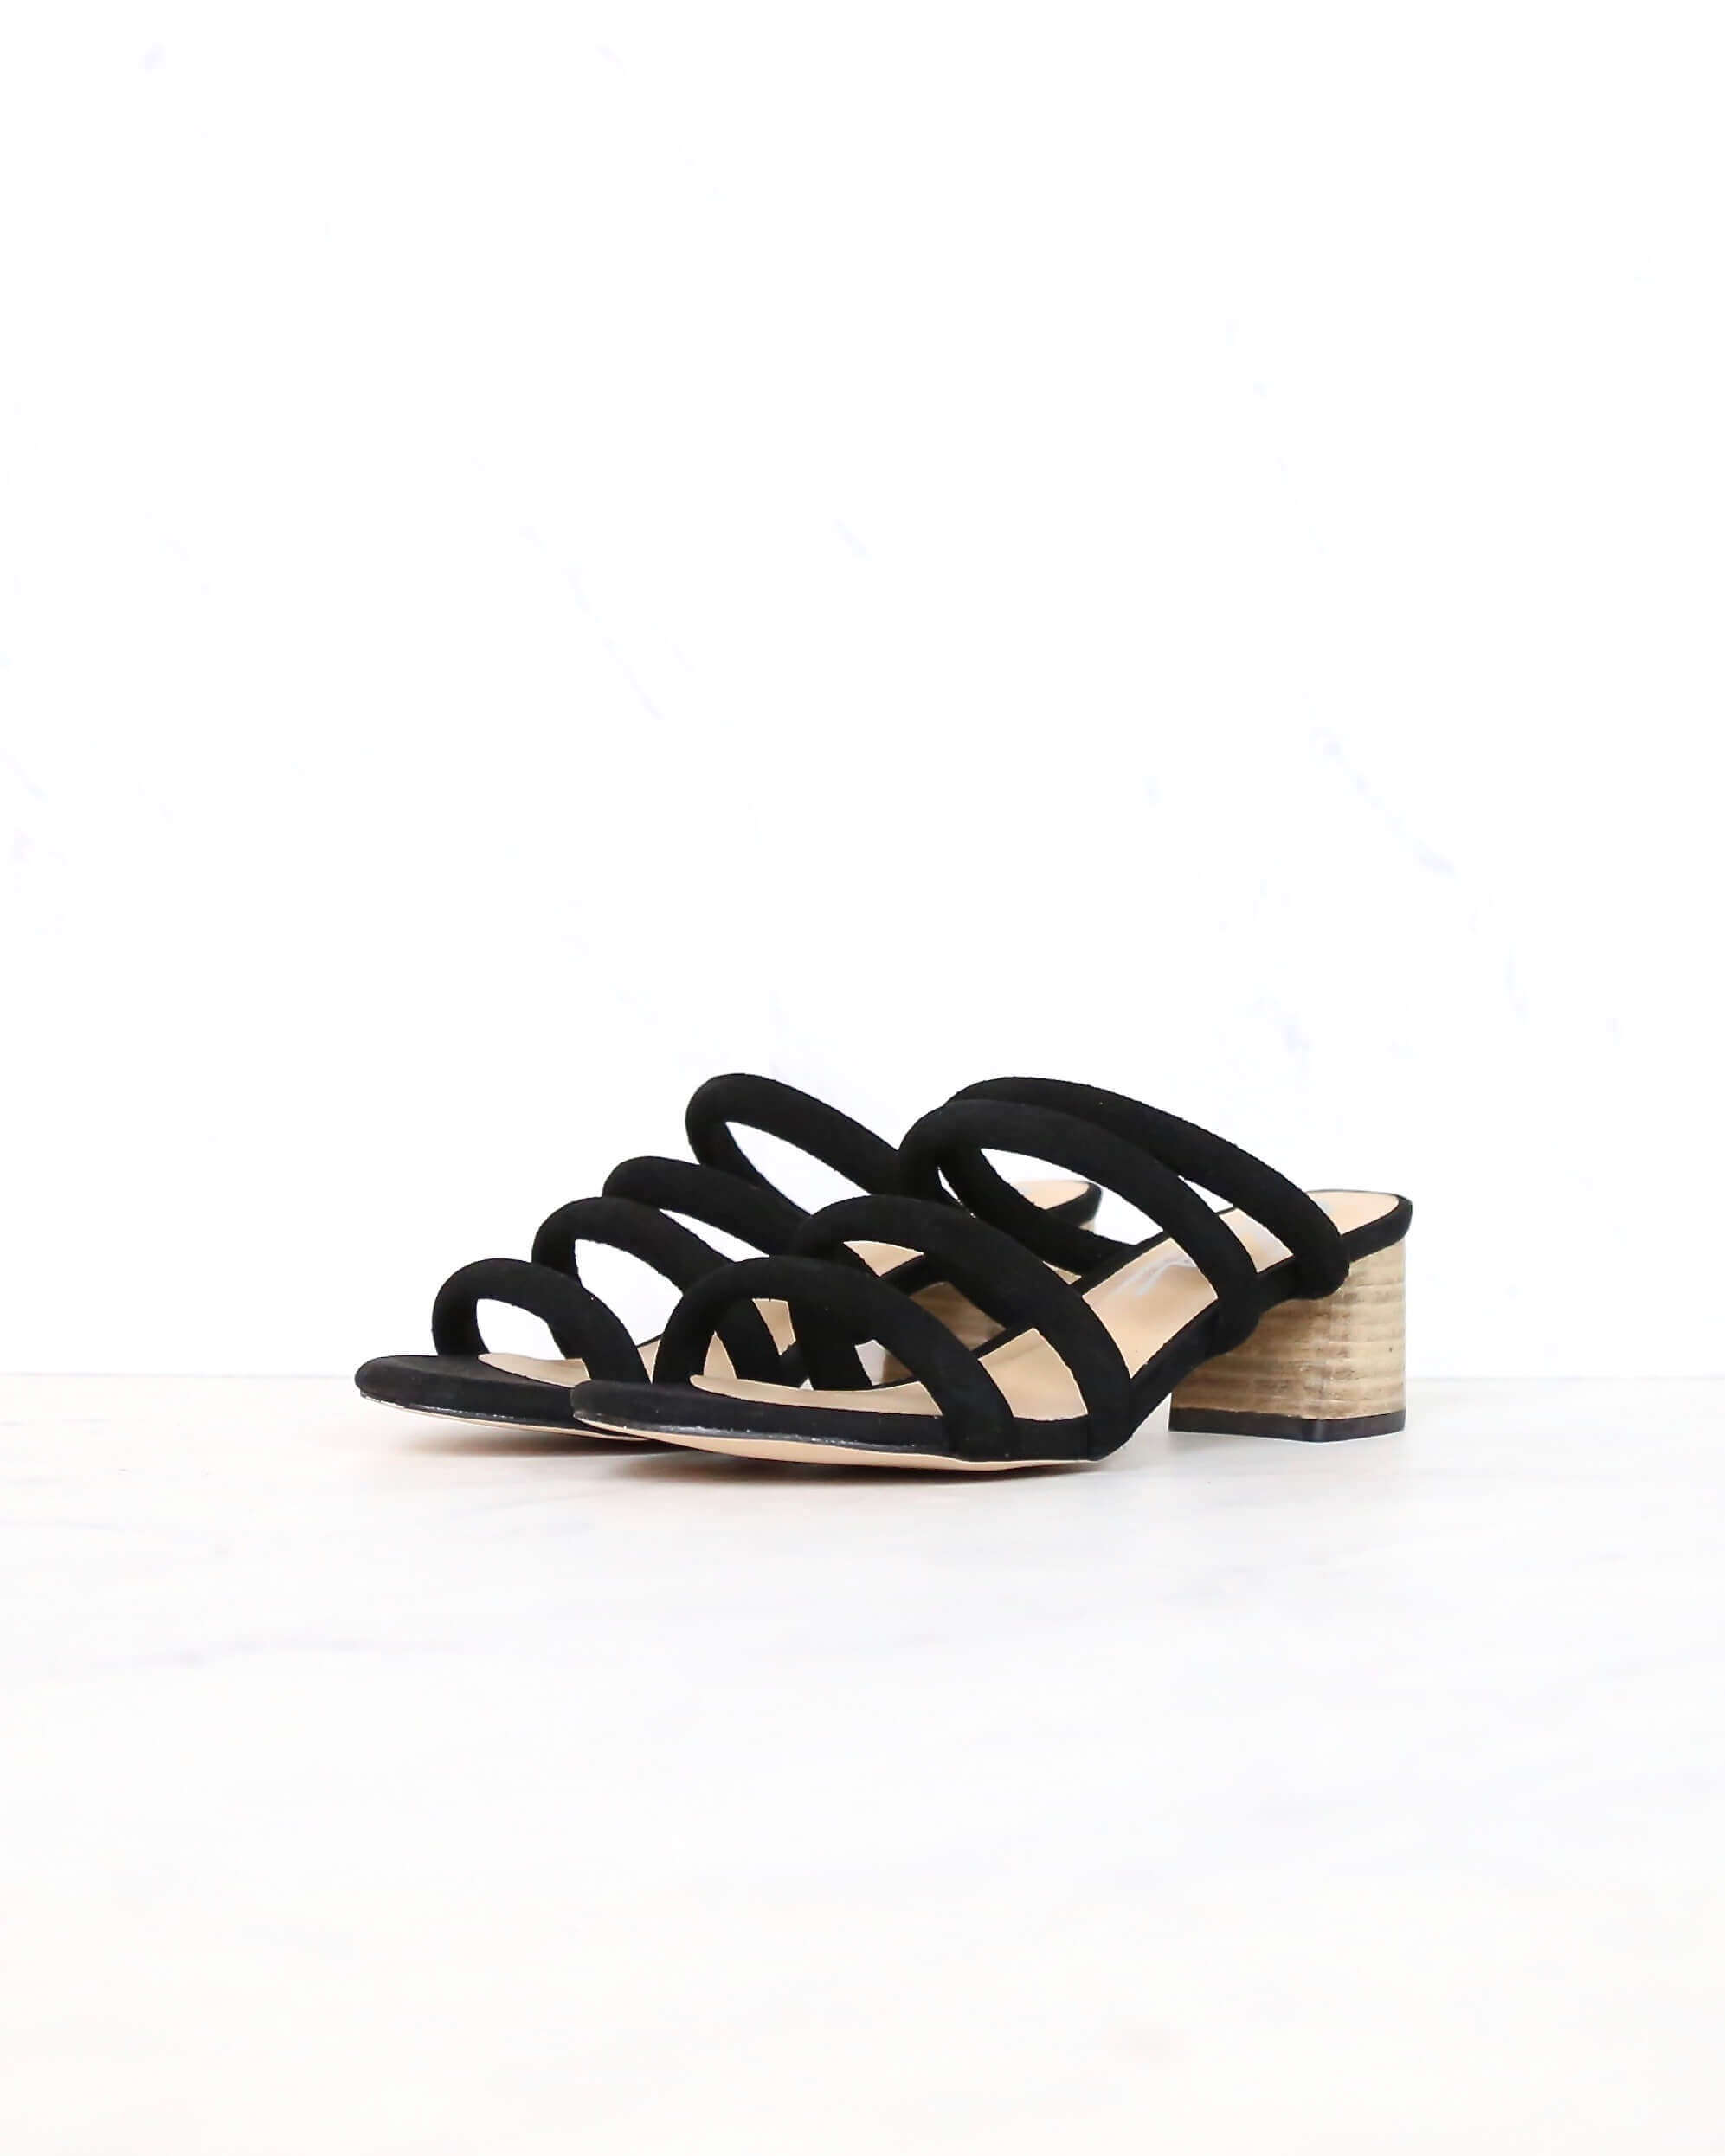 Alysheba Heel Black Sandal Strappy Low Sbicca In UVzpSM